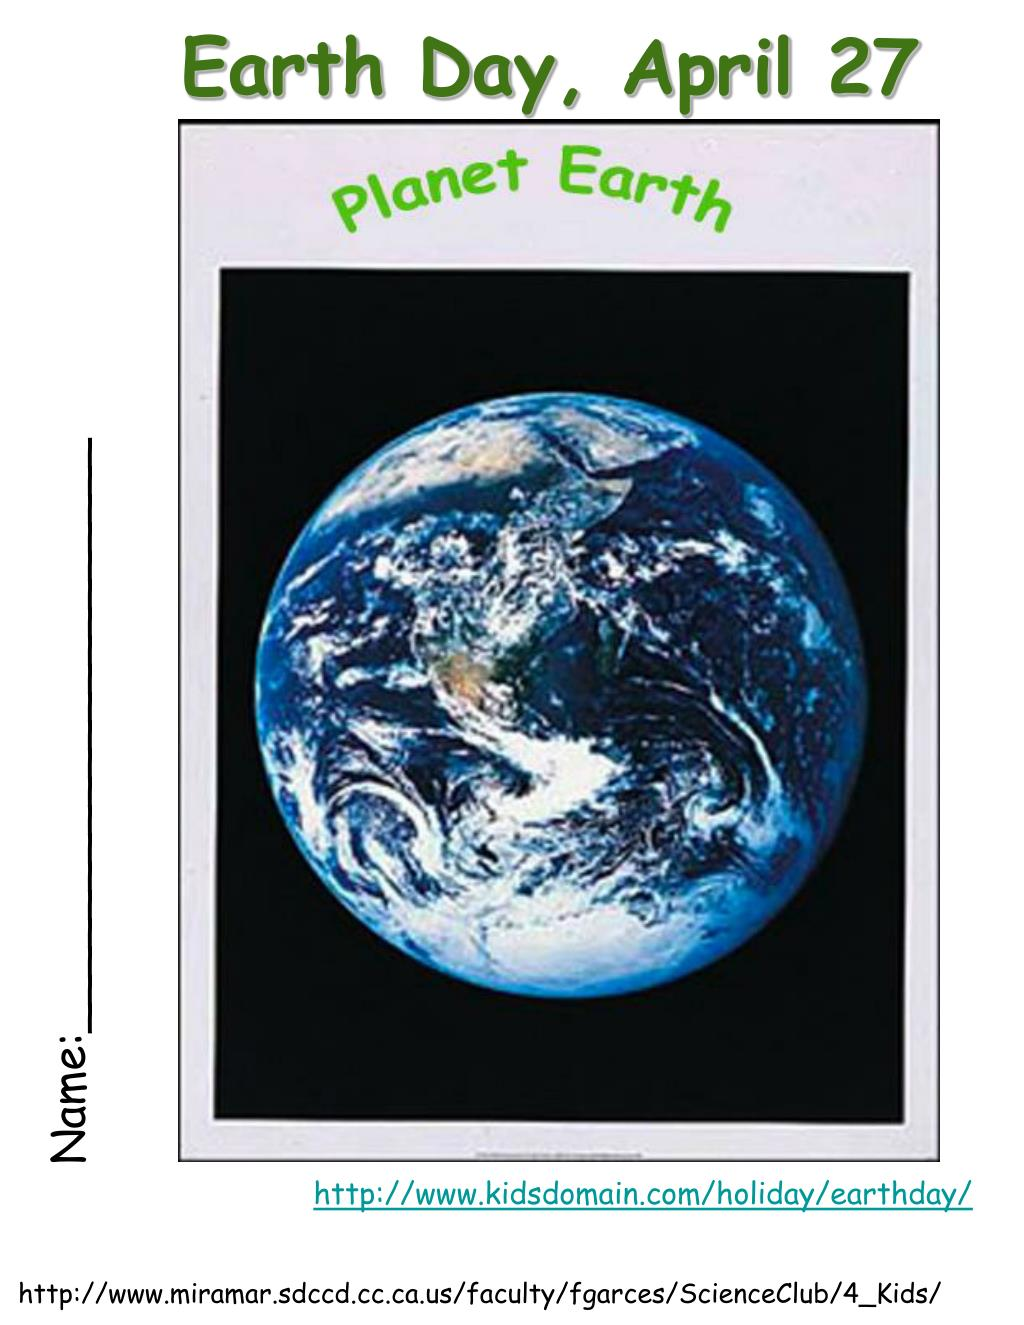 Earth Day, April 27